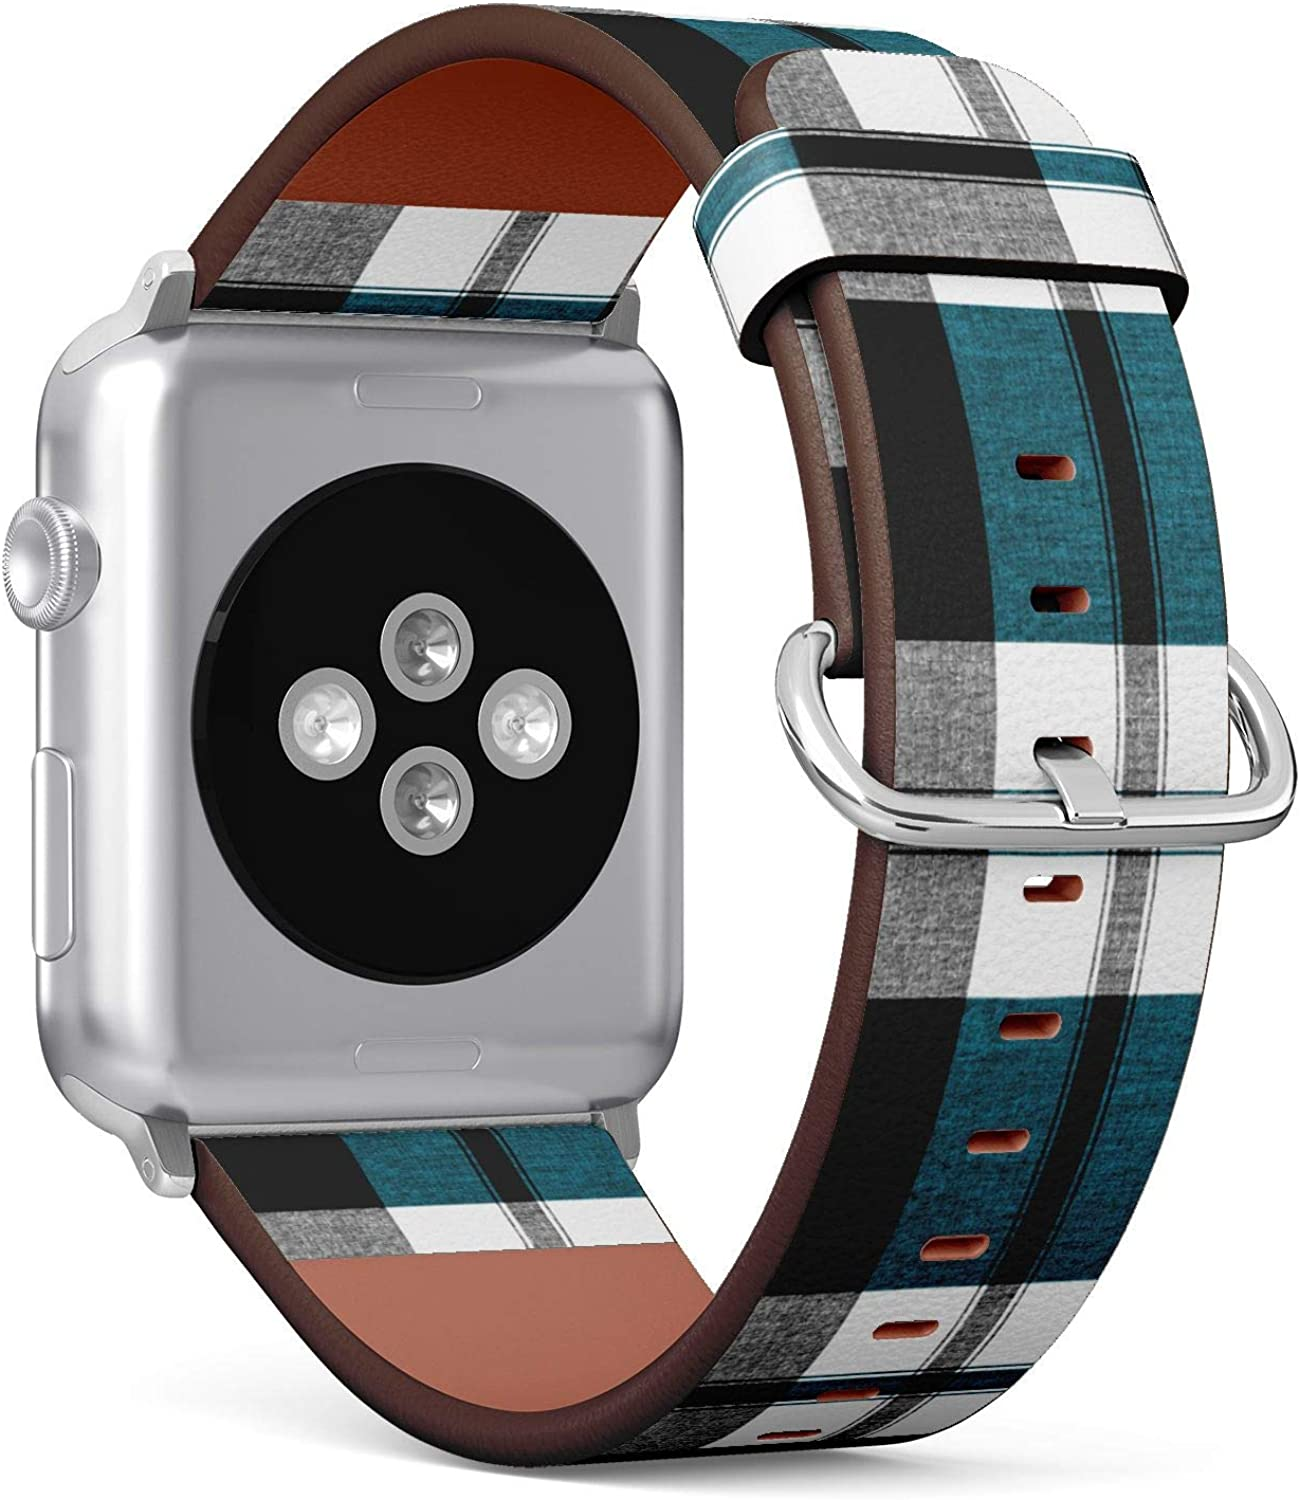 ( Traditional checkered fabric texture tartan plaid pattern )Patterned Leather Wristband Strap for Apple Watch Series 4/3/2/1 gen ,Replacement for iWatch 38mm / 40mm bands